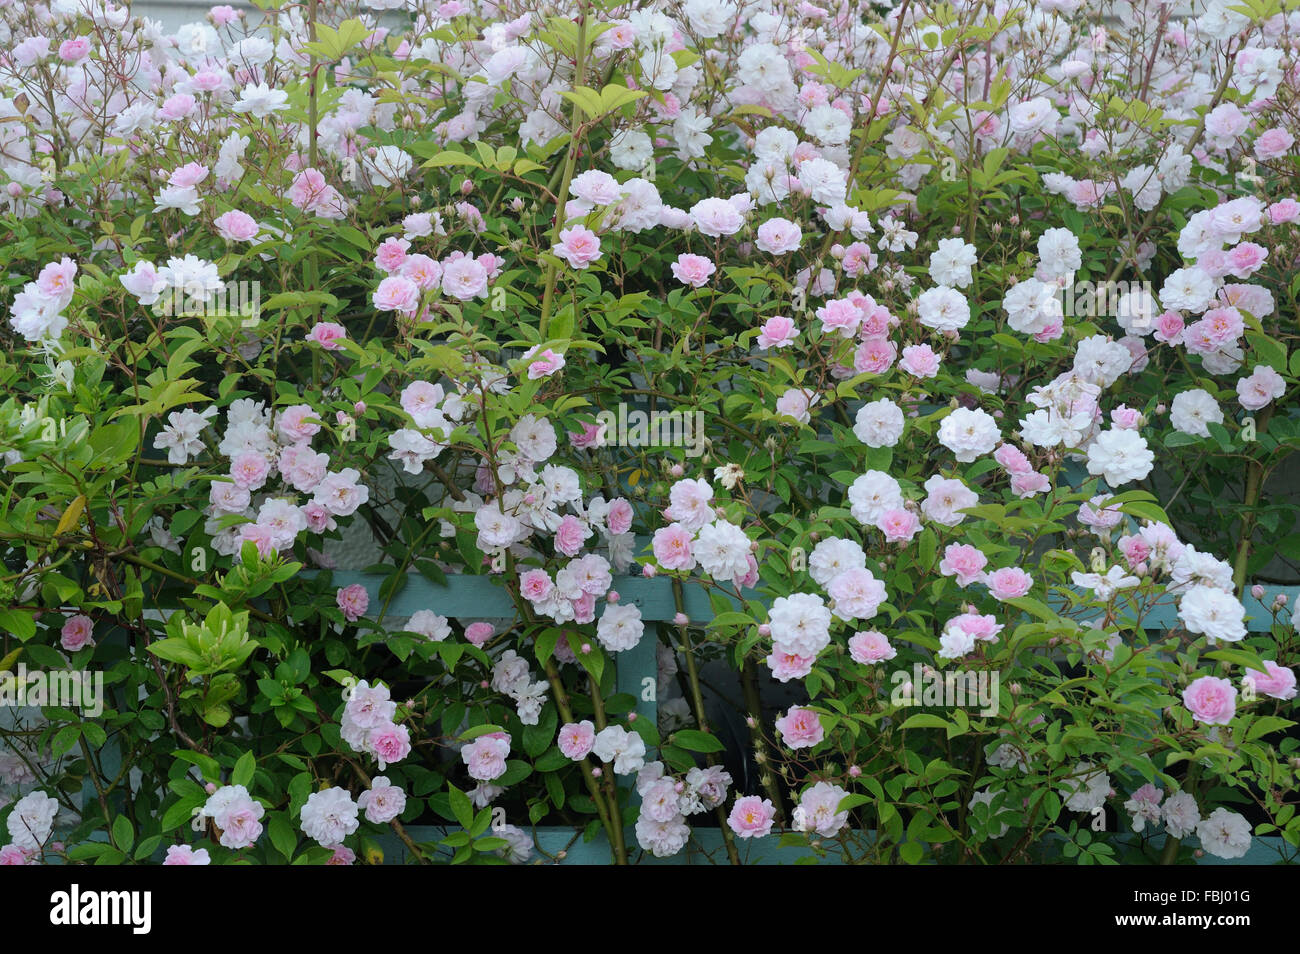 Flowering Rambling Rose (David Austin) on trellis in garden, Bentley, Suffolk, June 2013 - Stock Image